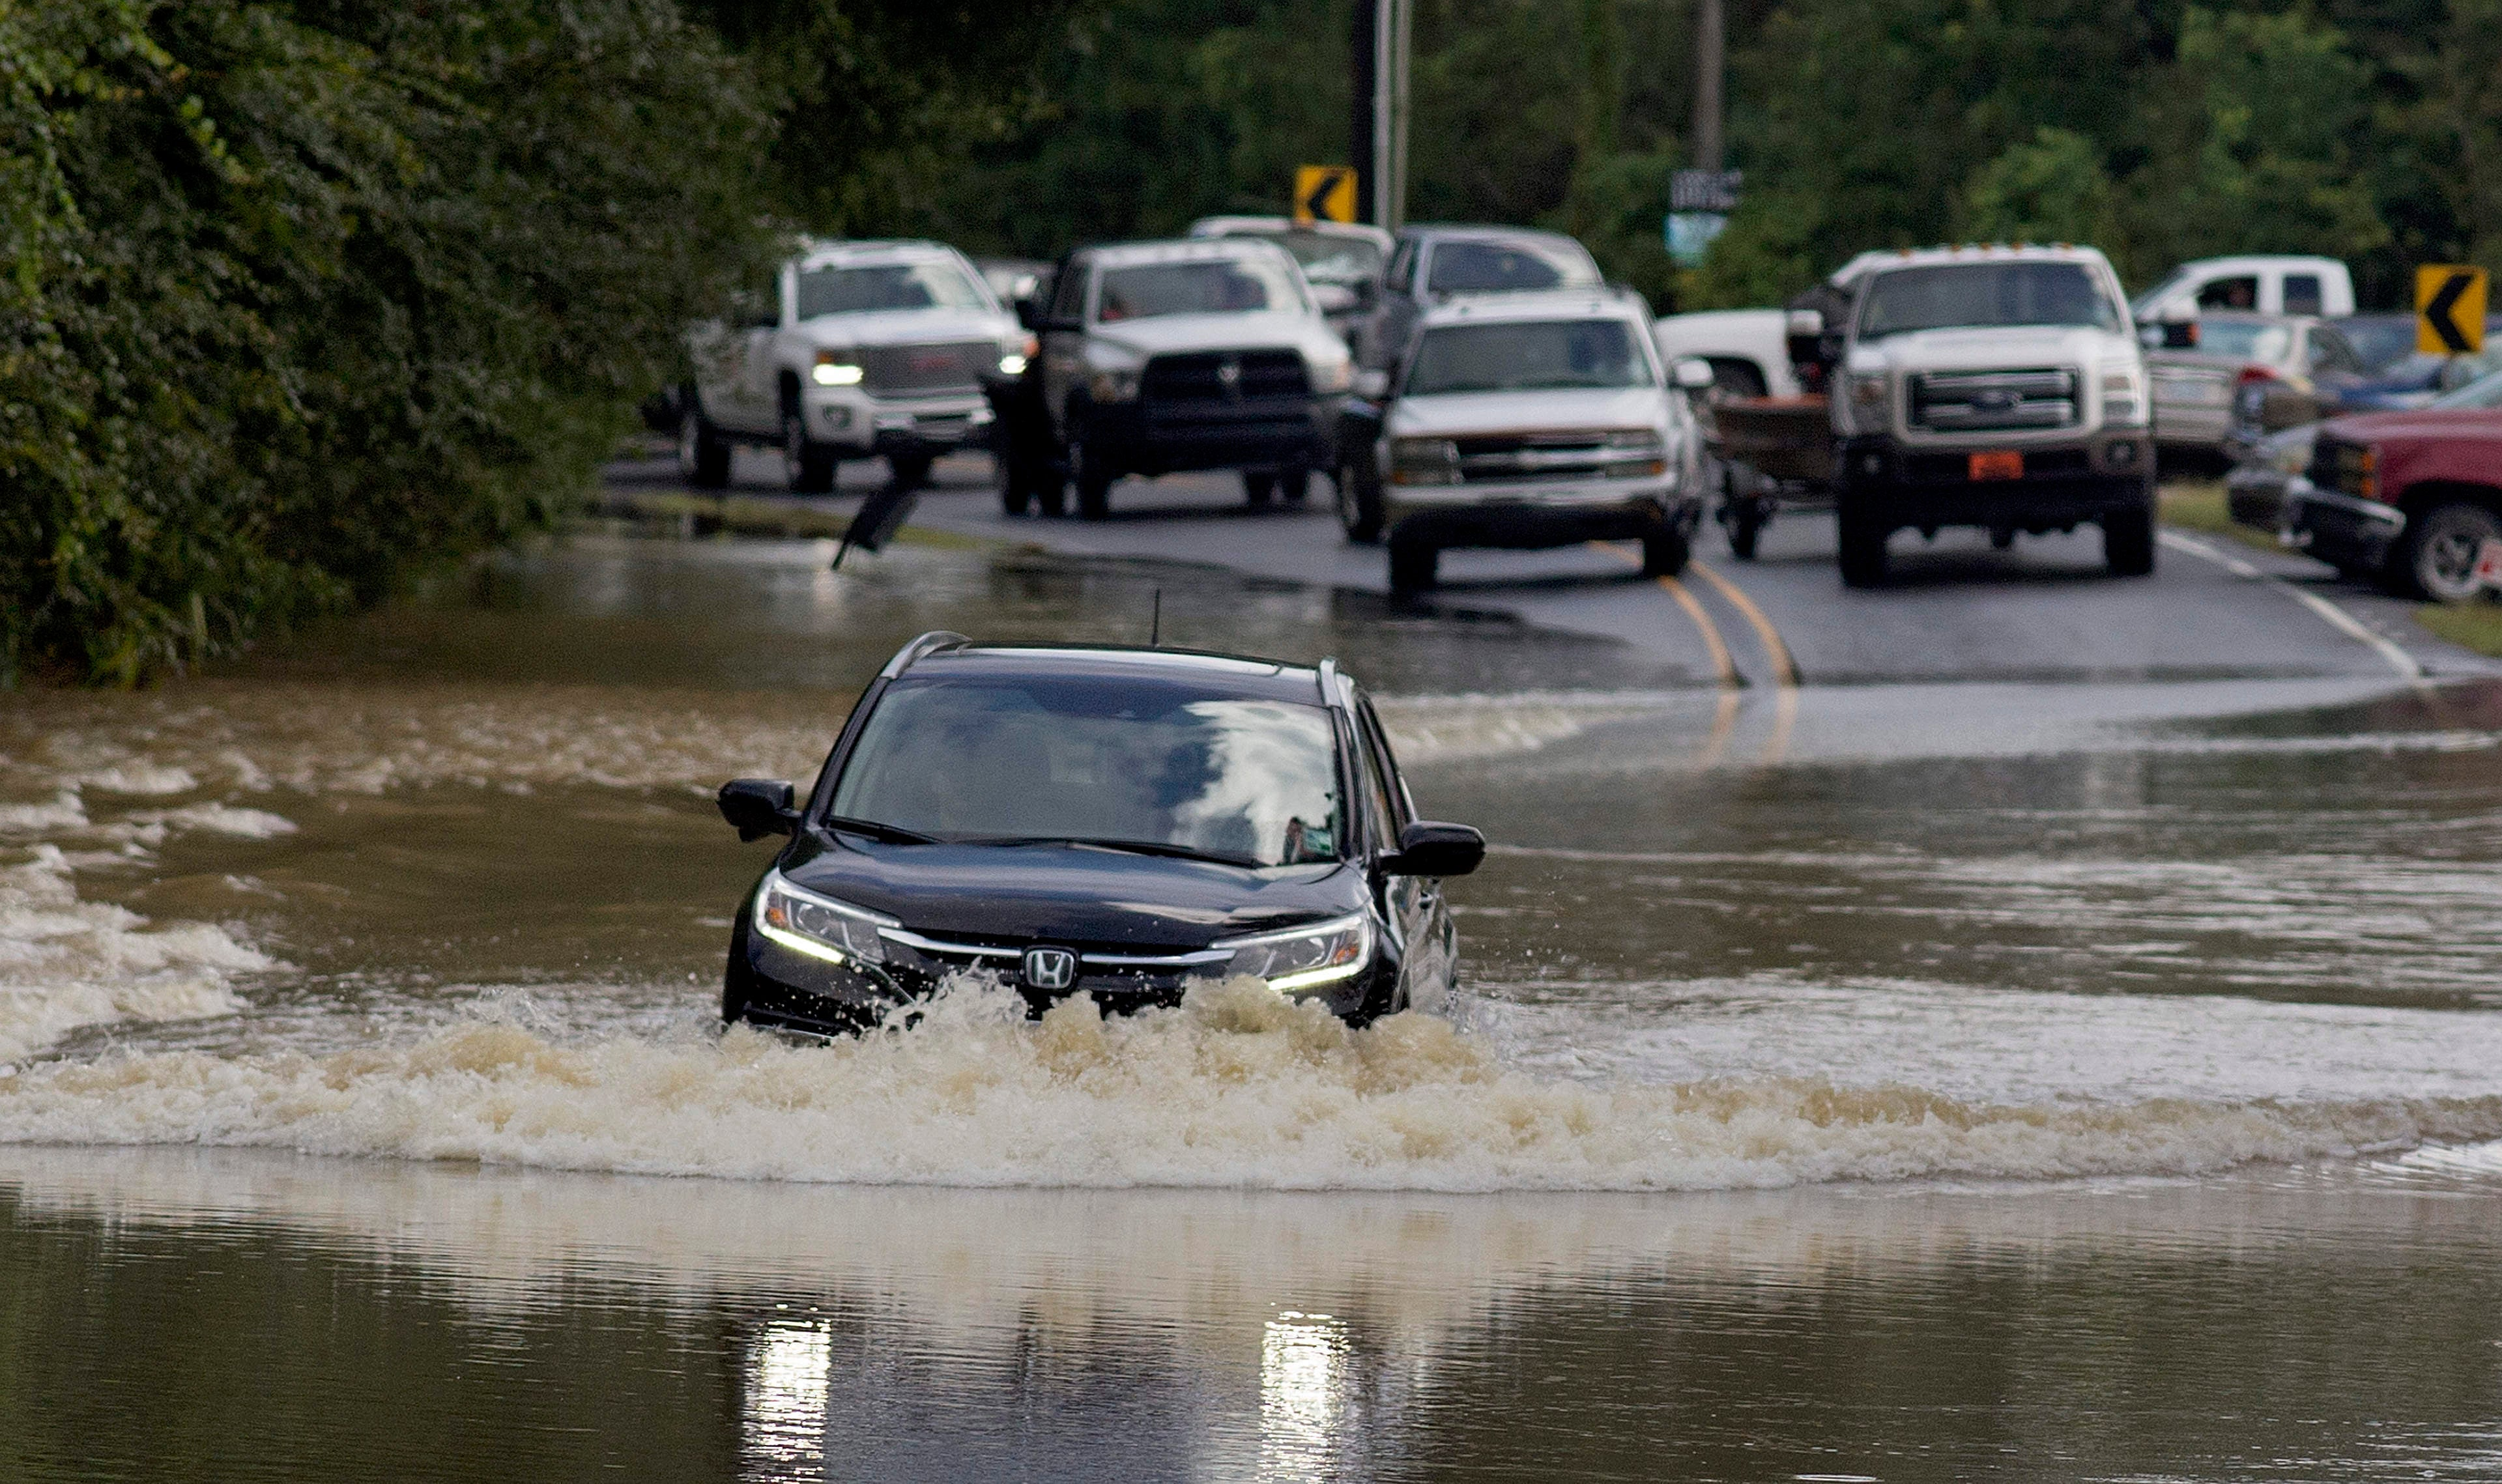 NOAA: Expect More Extreme Flood Events In the Future